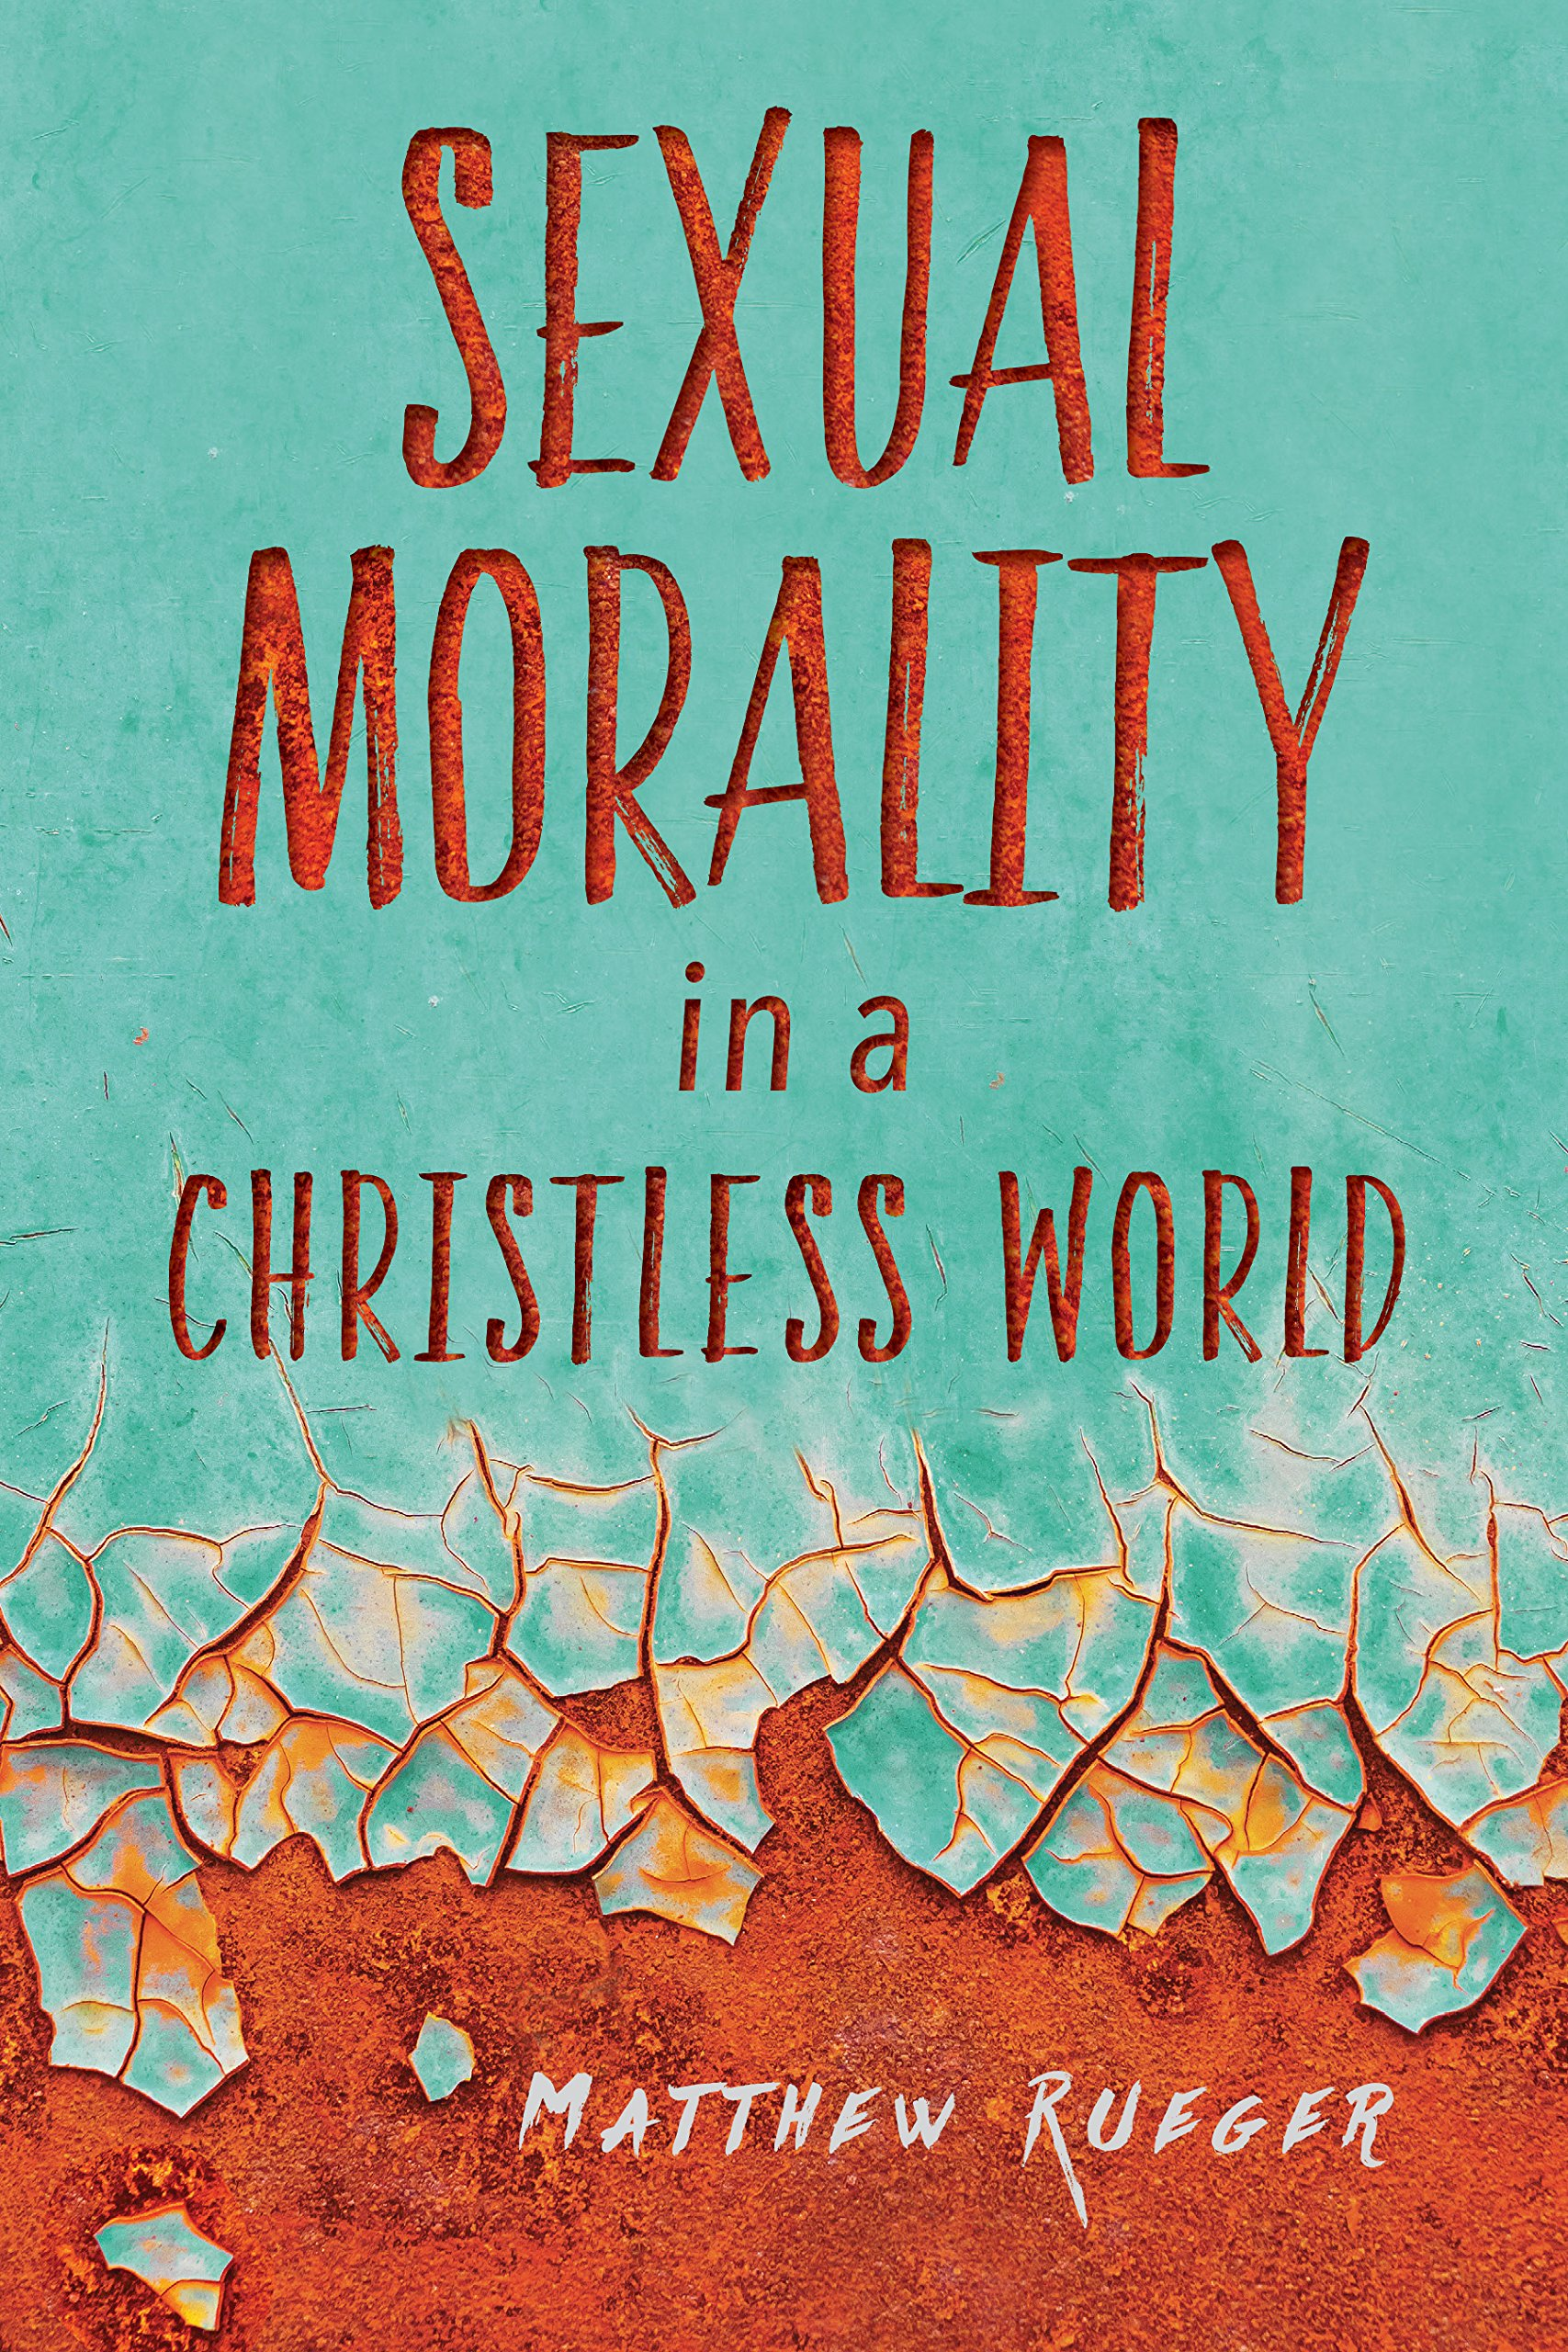 Sexual Morality in a Christless World Paperback – June 28, 2016